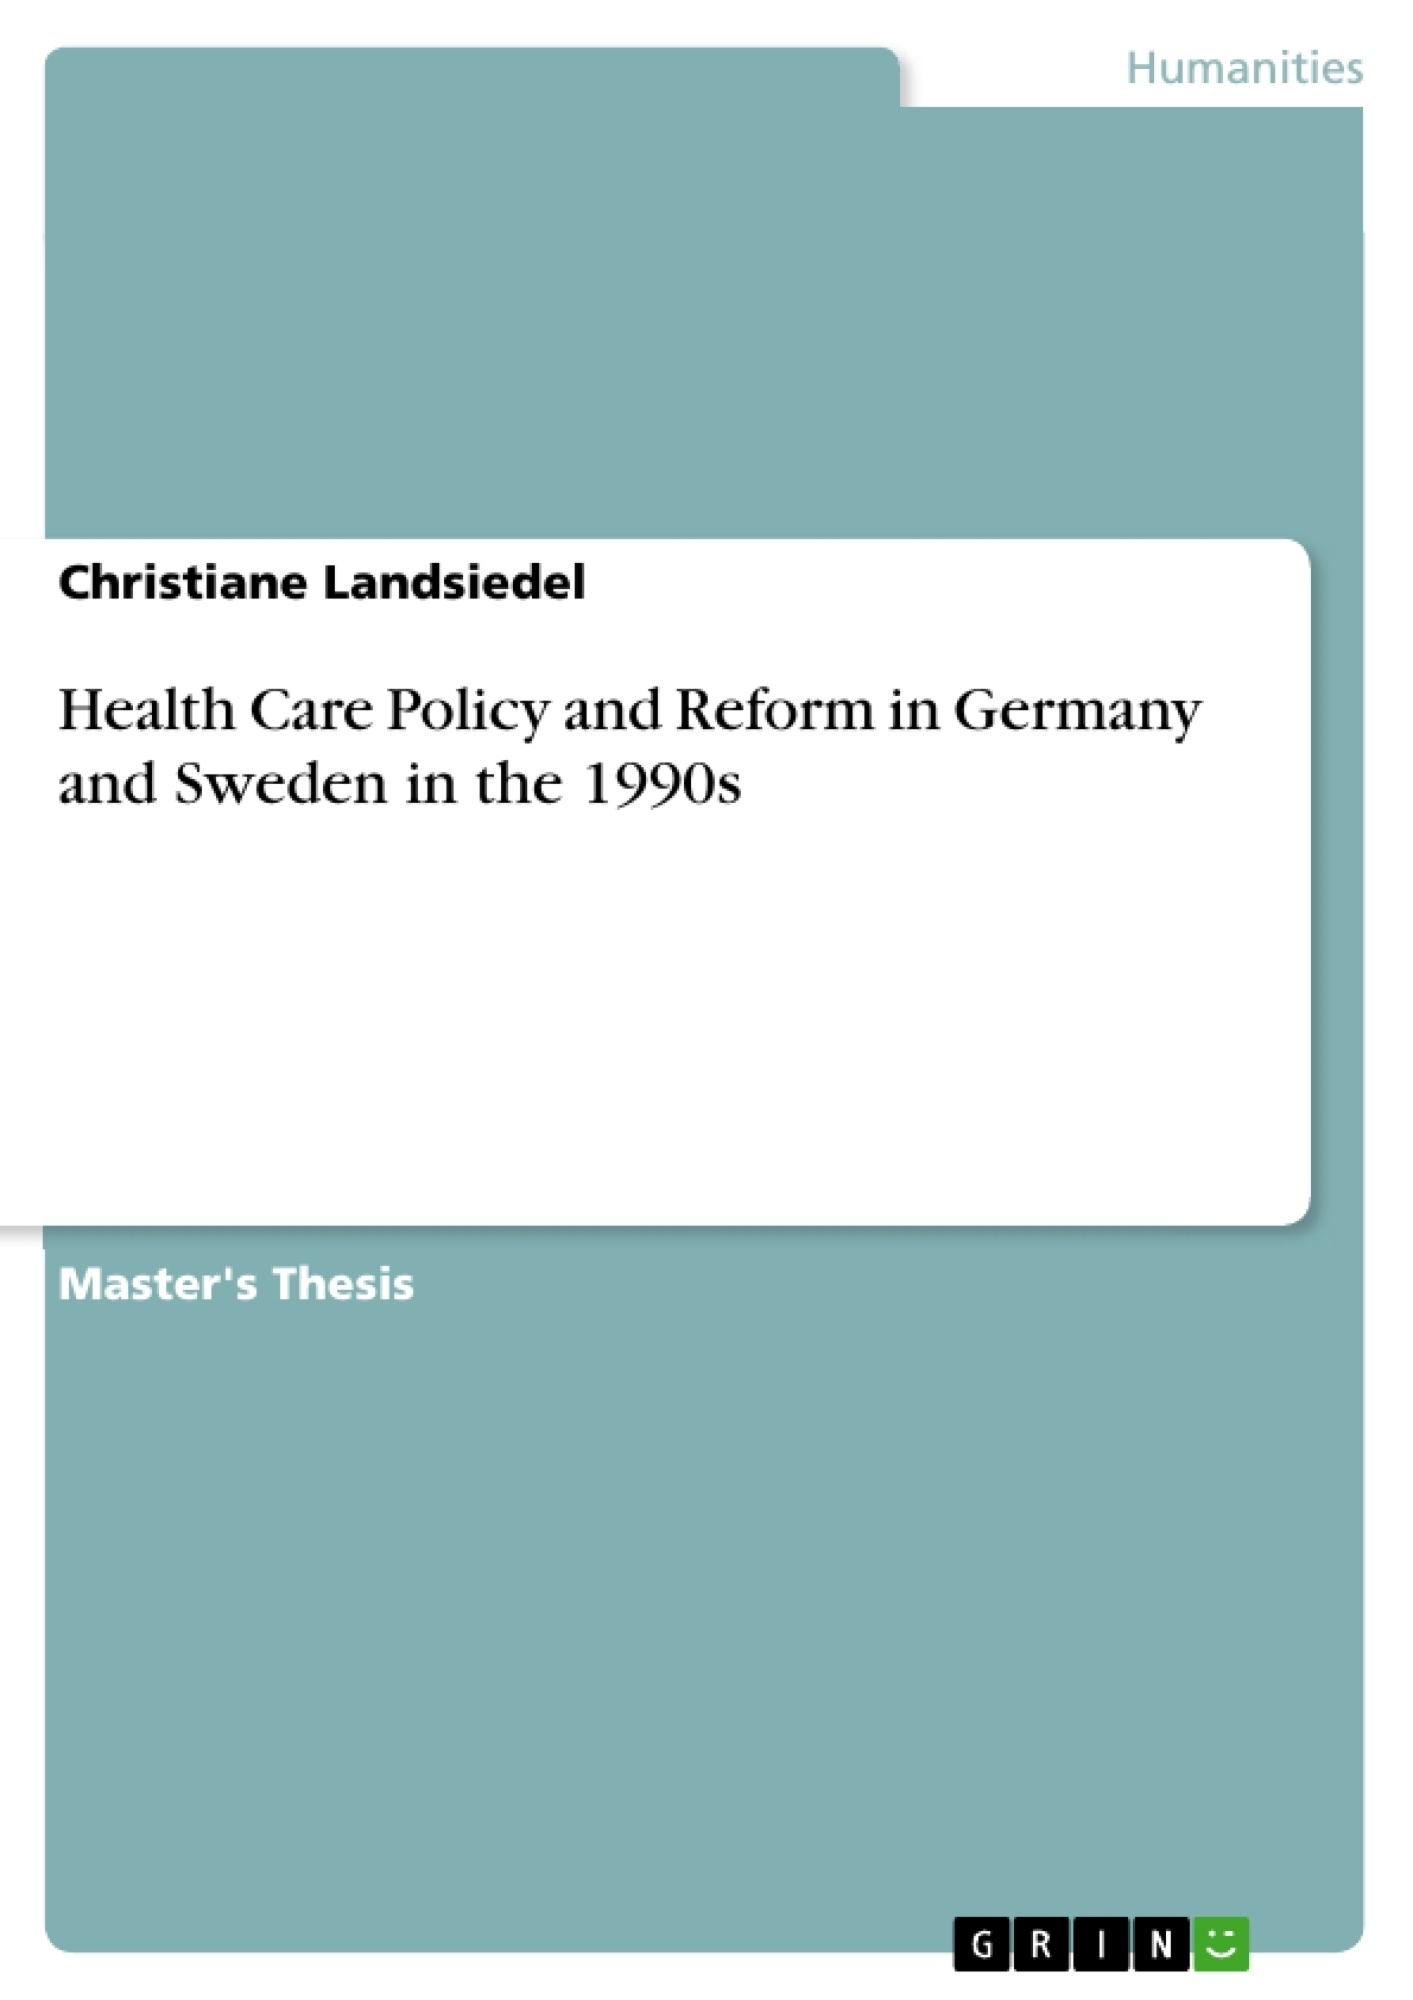 Title: Health Care Policy and Reform in Germany and Sweden in the 1990s